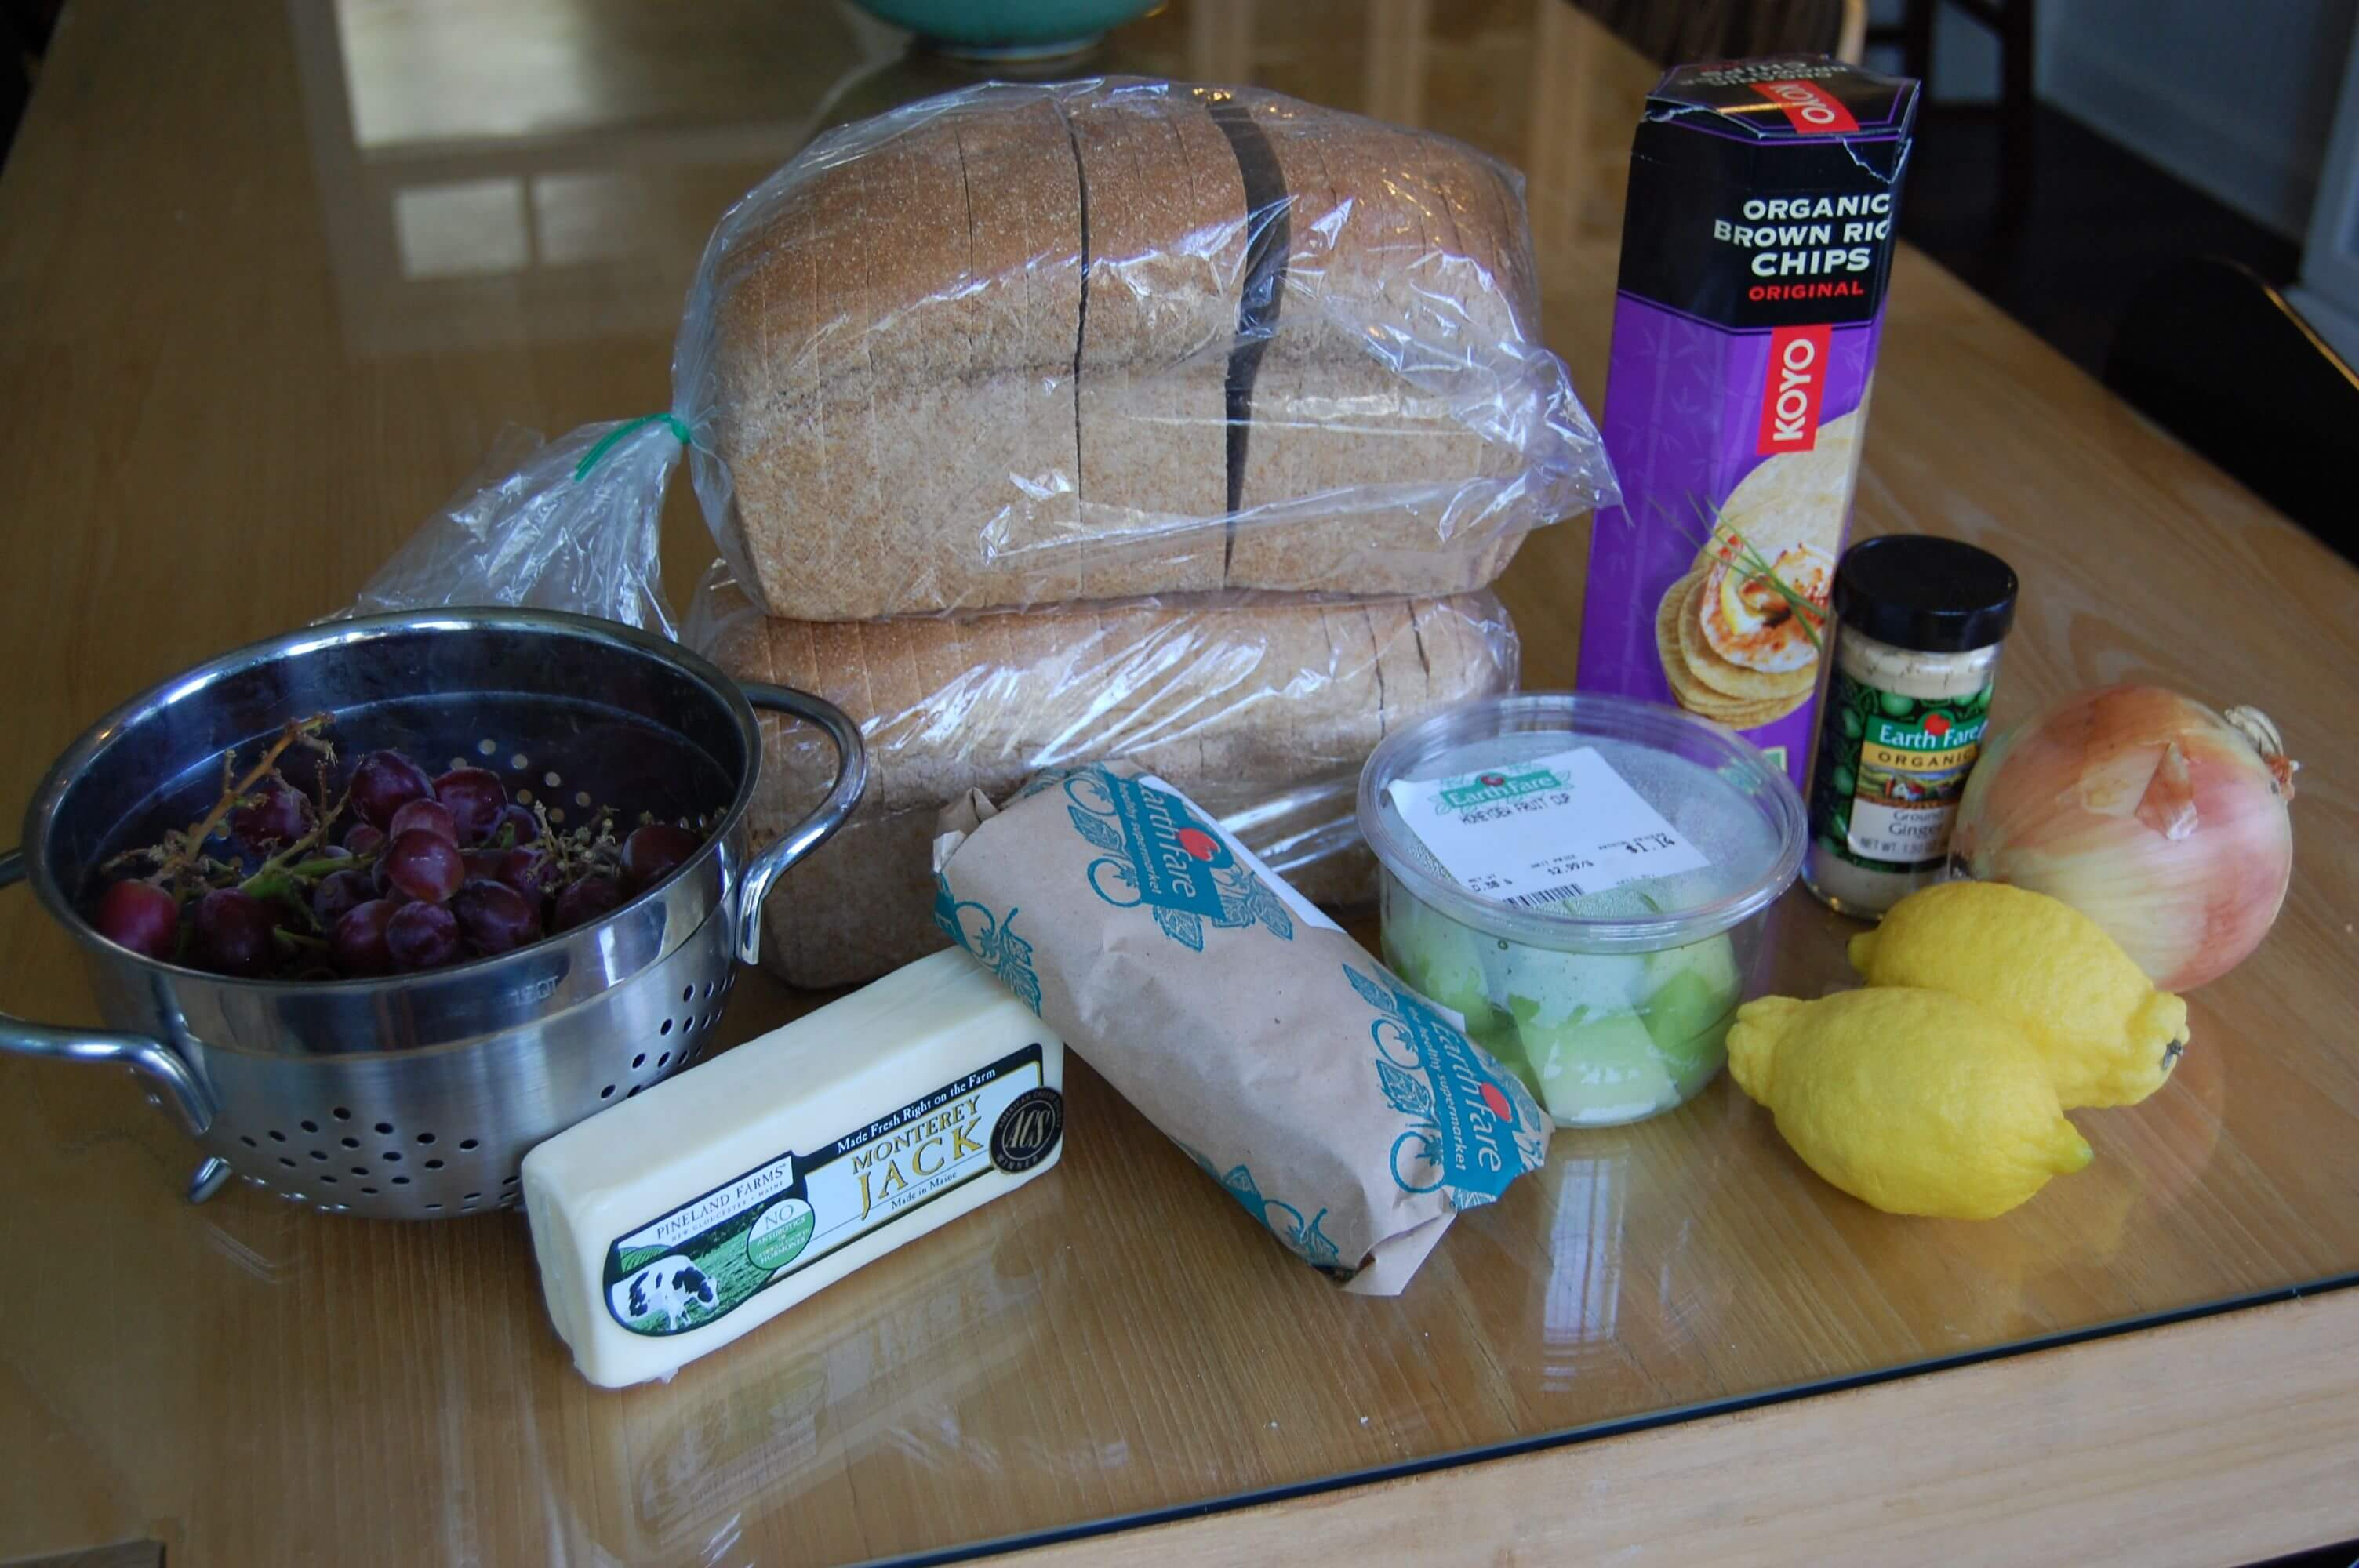 Groceries from Earthfare that include flounder, an onion, lemons, honeydew, grapes, cheese, whole-wheat bread, brown rice crackers, and ground ginger.